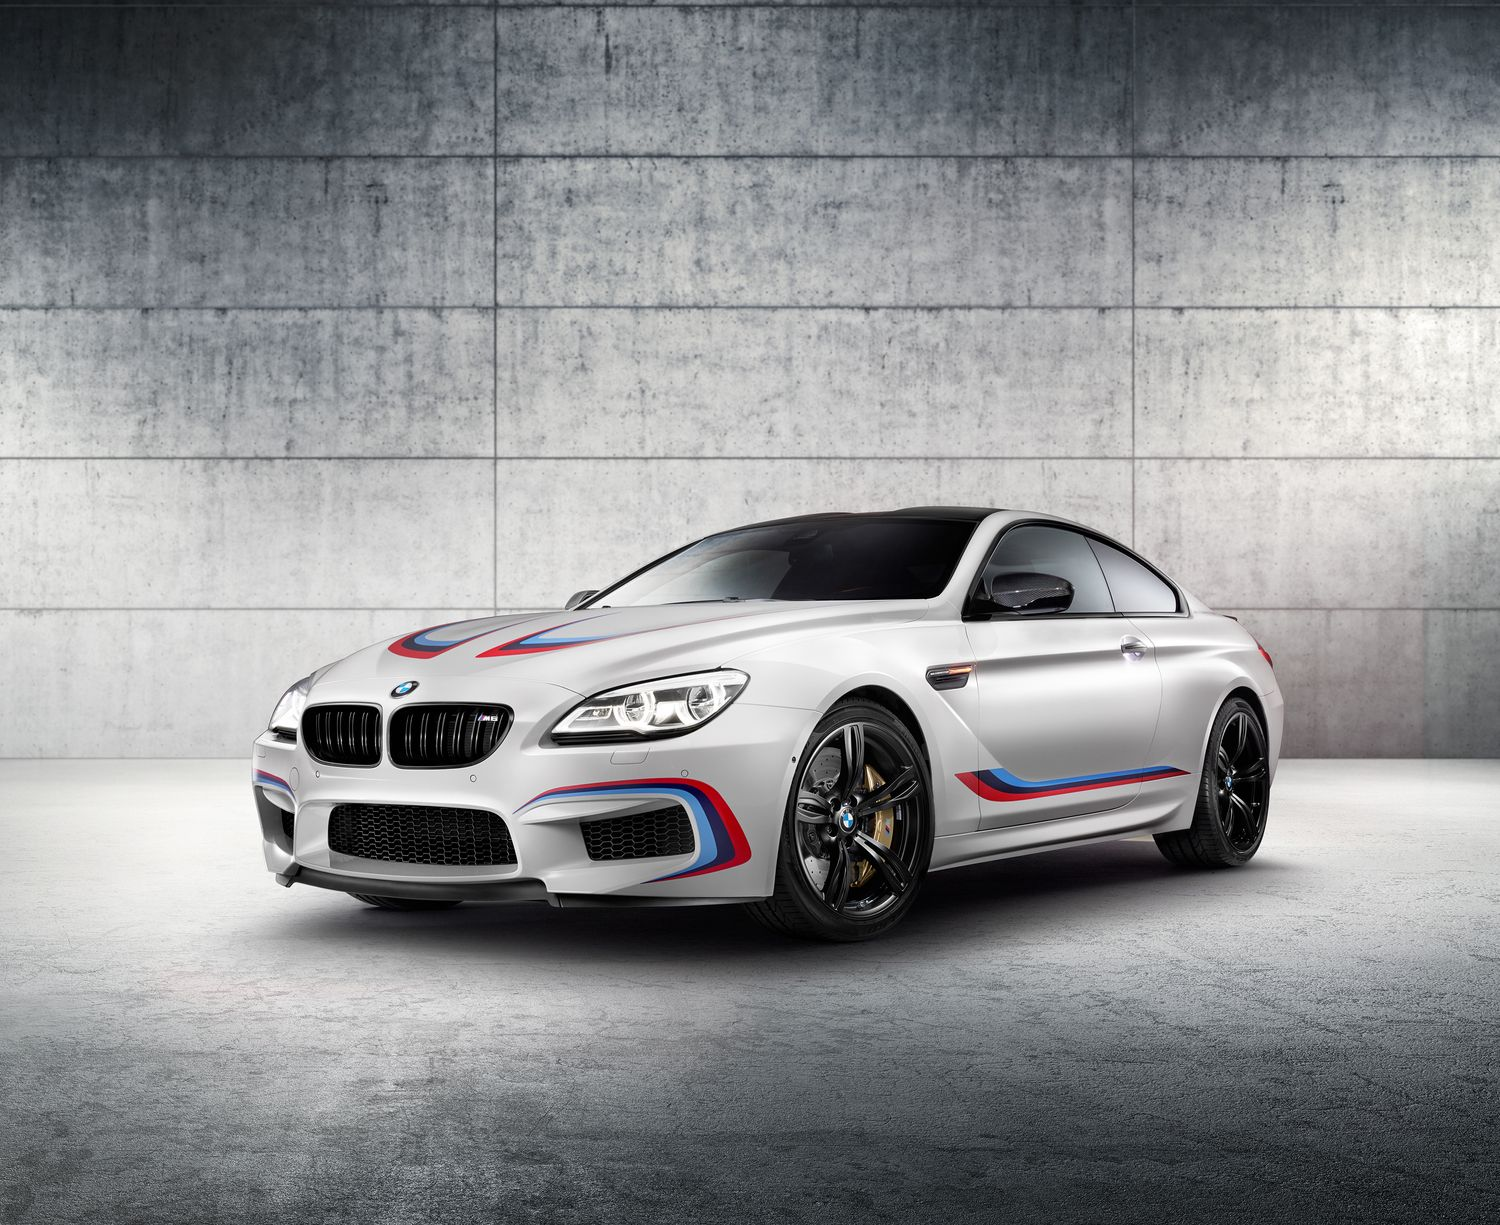 Bmw M6 Gt3 Competition Edition Bmw M6 Bmw M6 Coupe Bmw